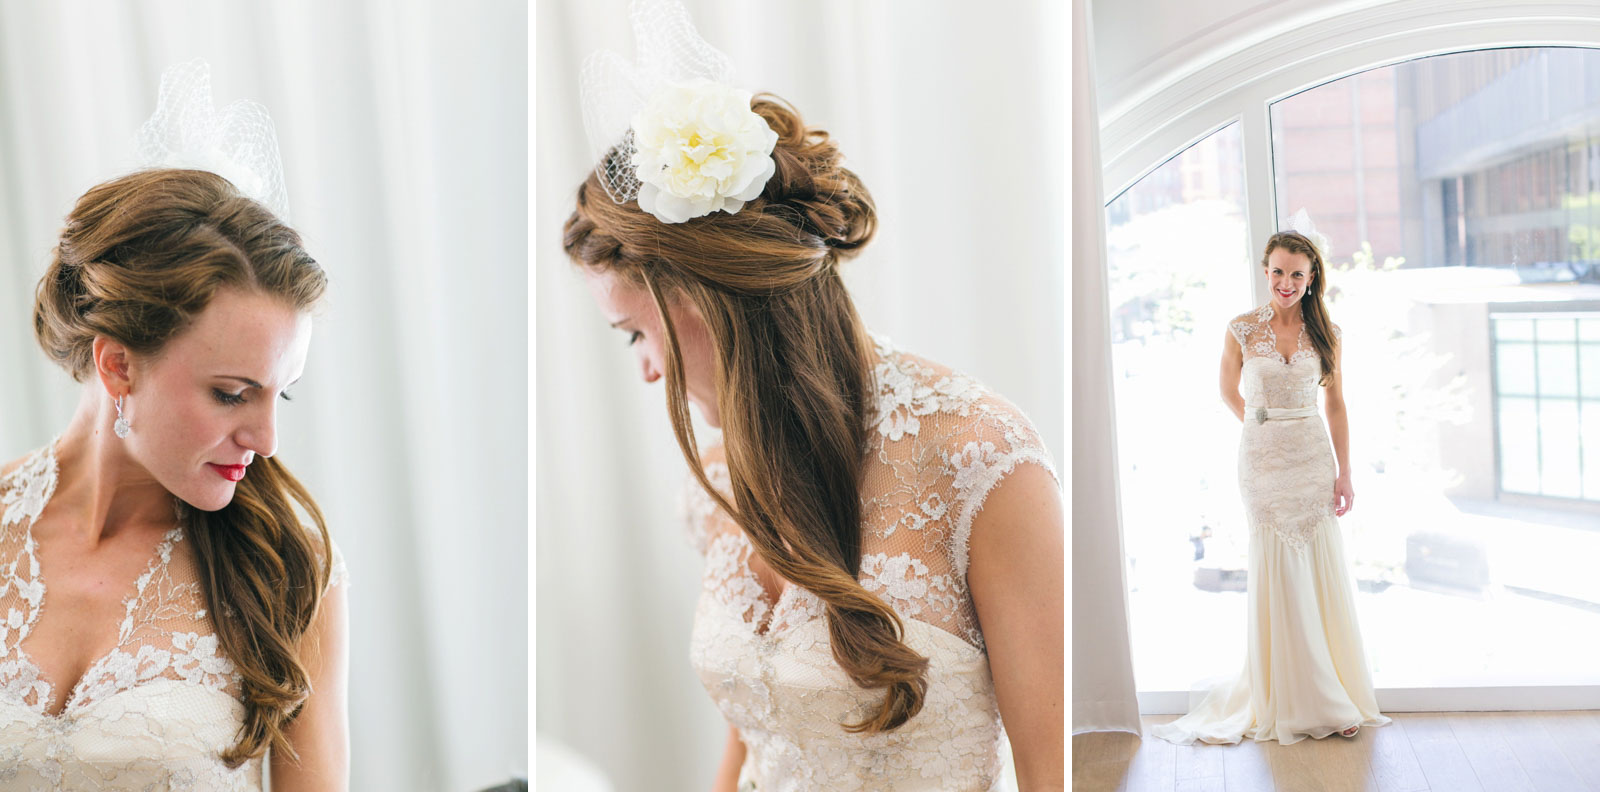 portraits of bride while getting ready at ames hotel vintage-inspired bridal look with birdcage veil